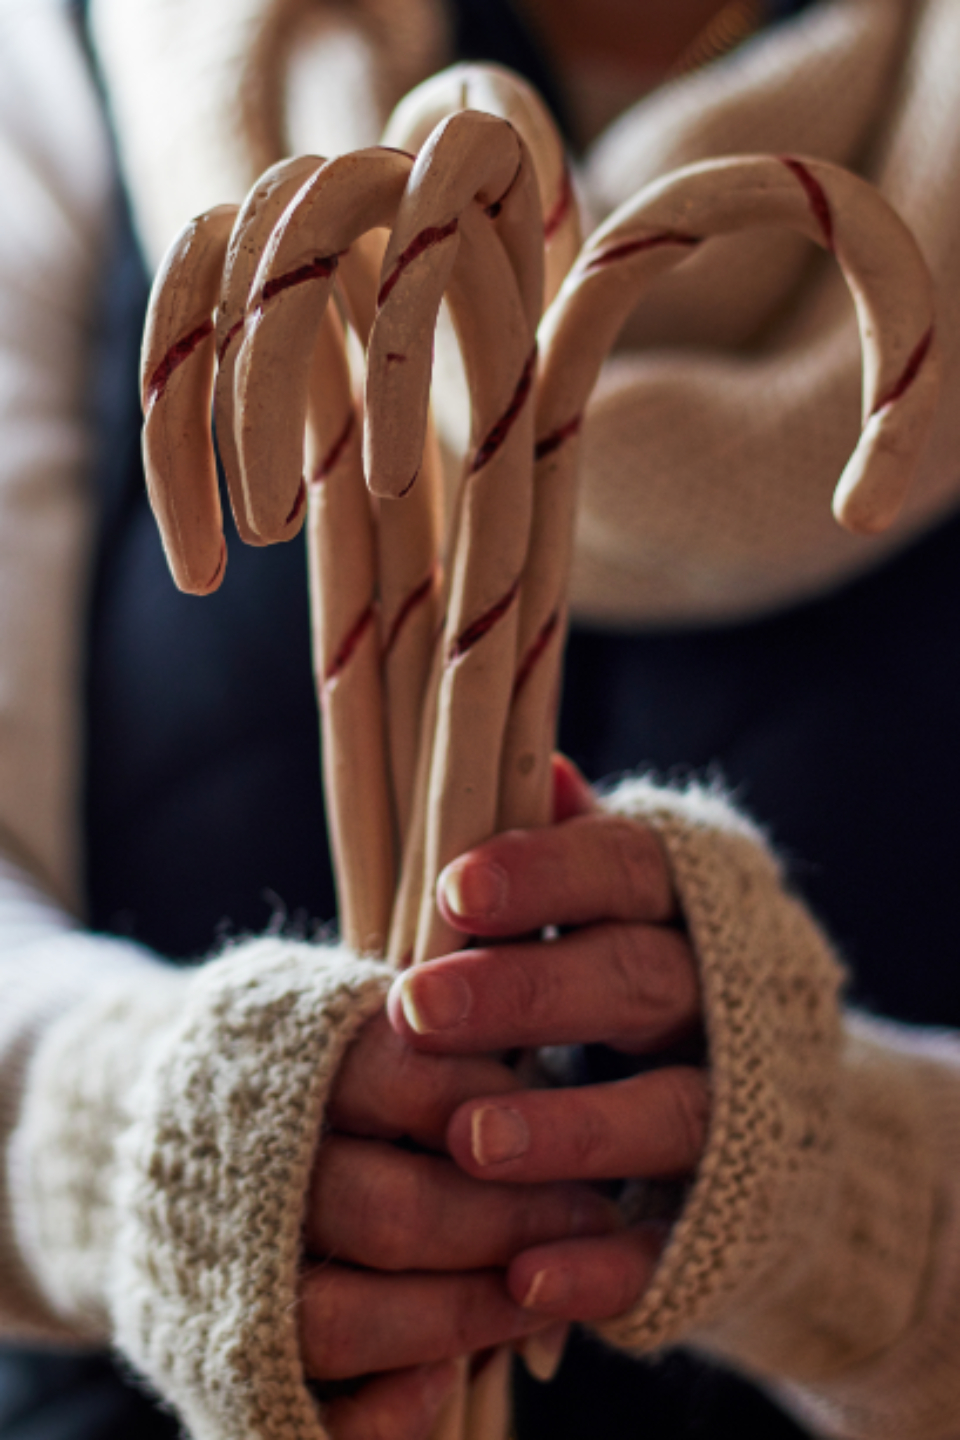 candy canes christmas peppermint sweets food holidays close up treat dessert festive holding hands cozy person gift